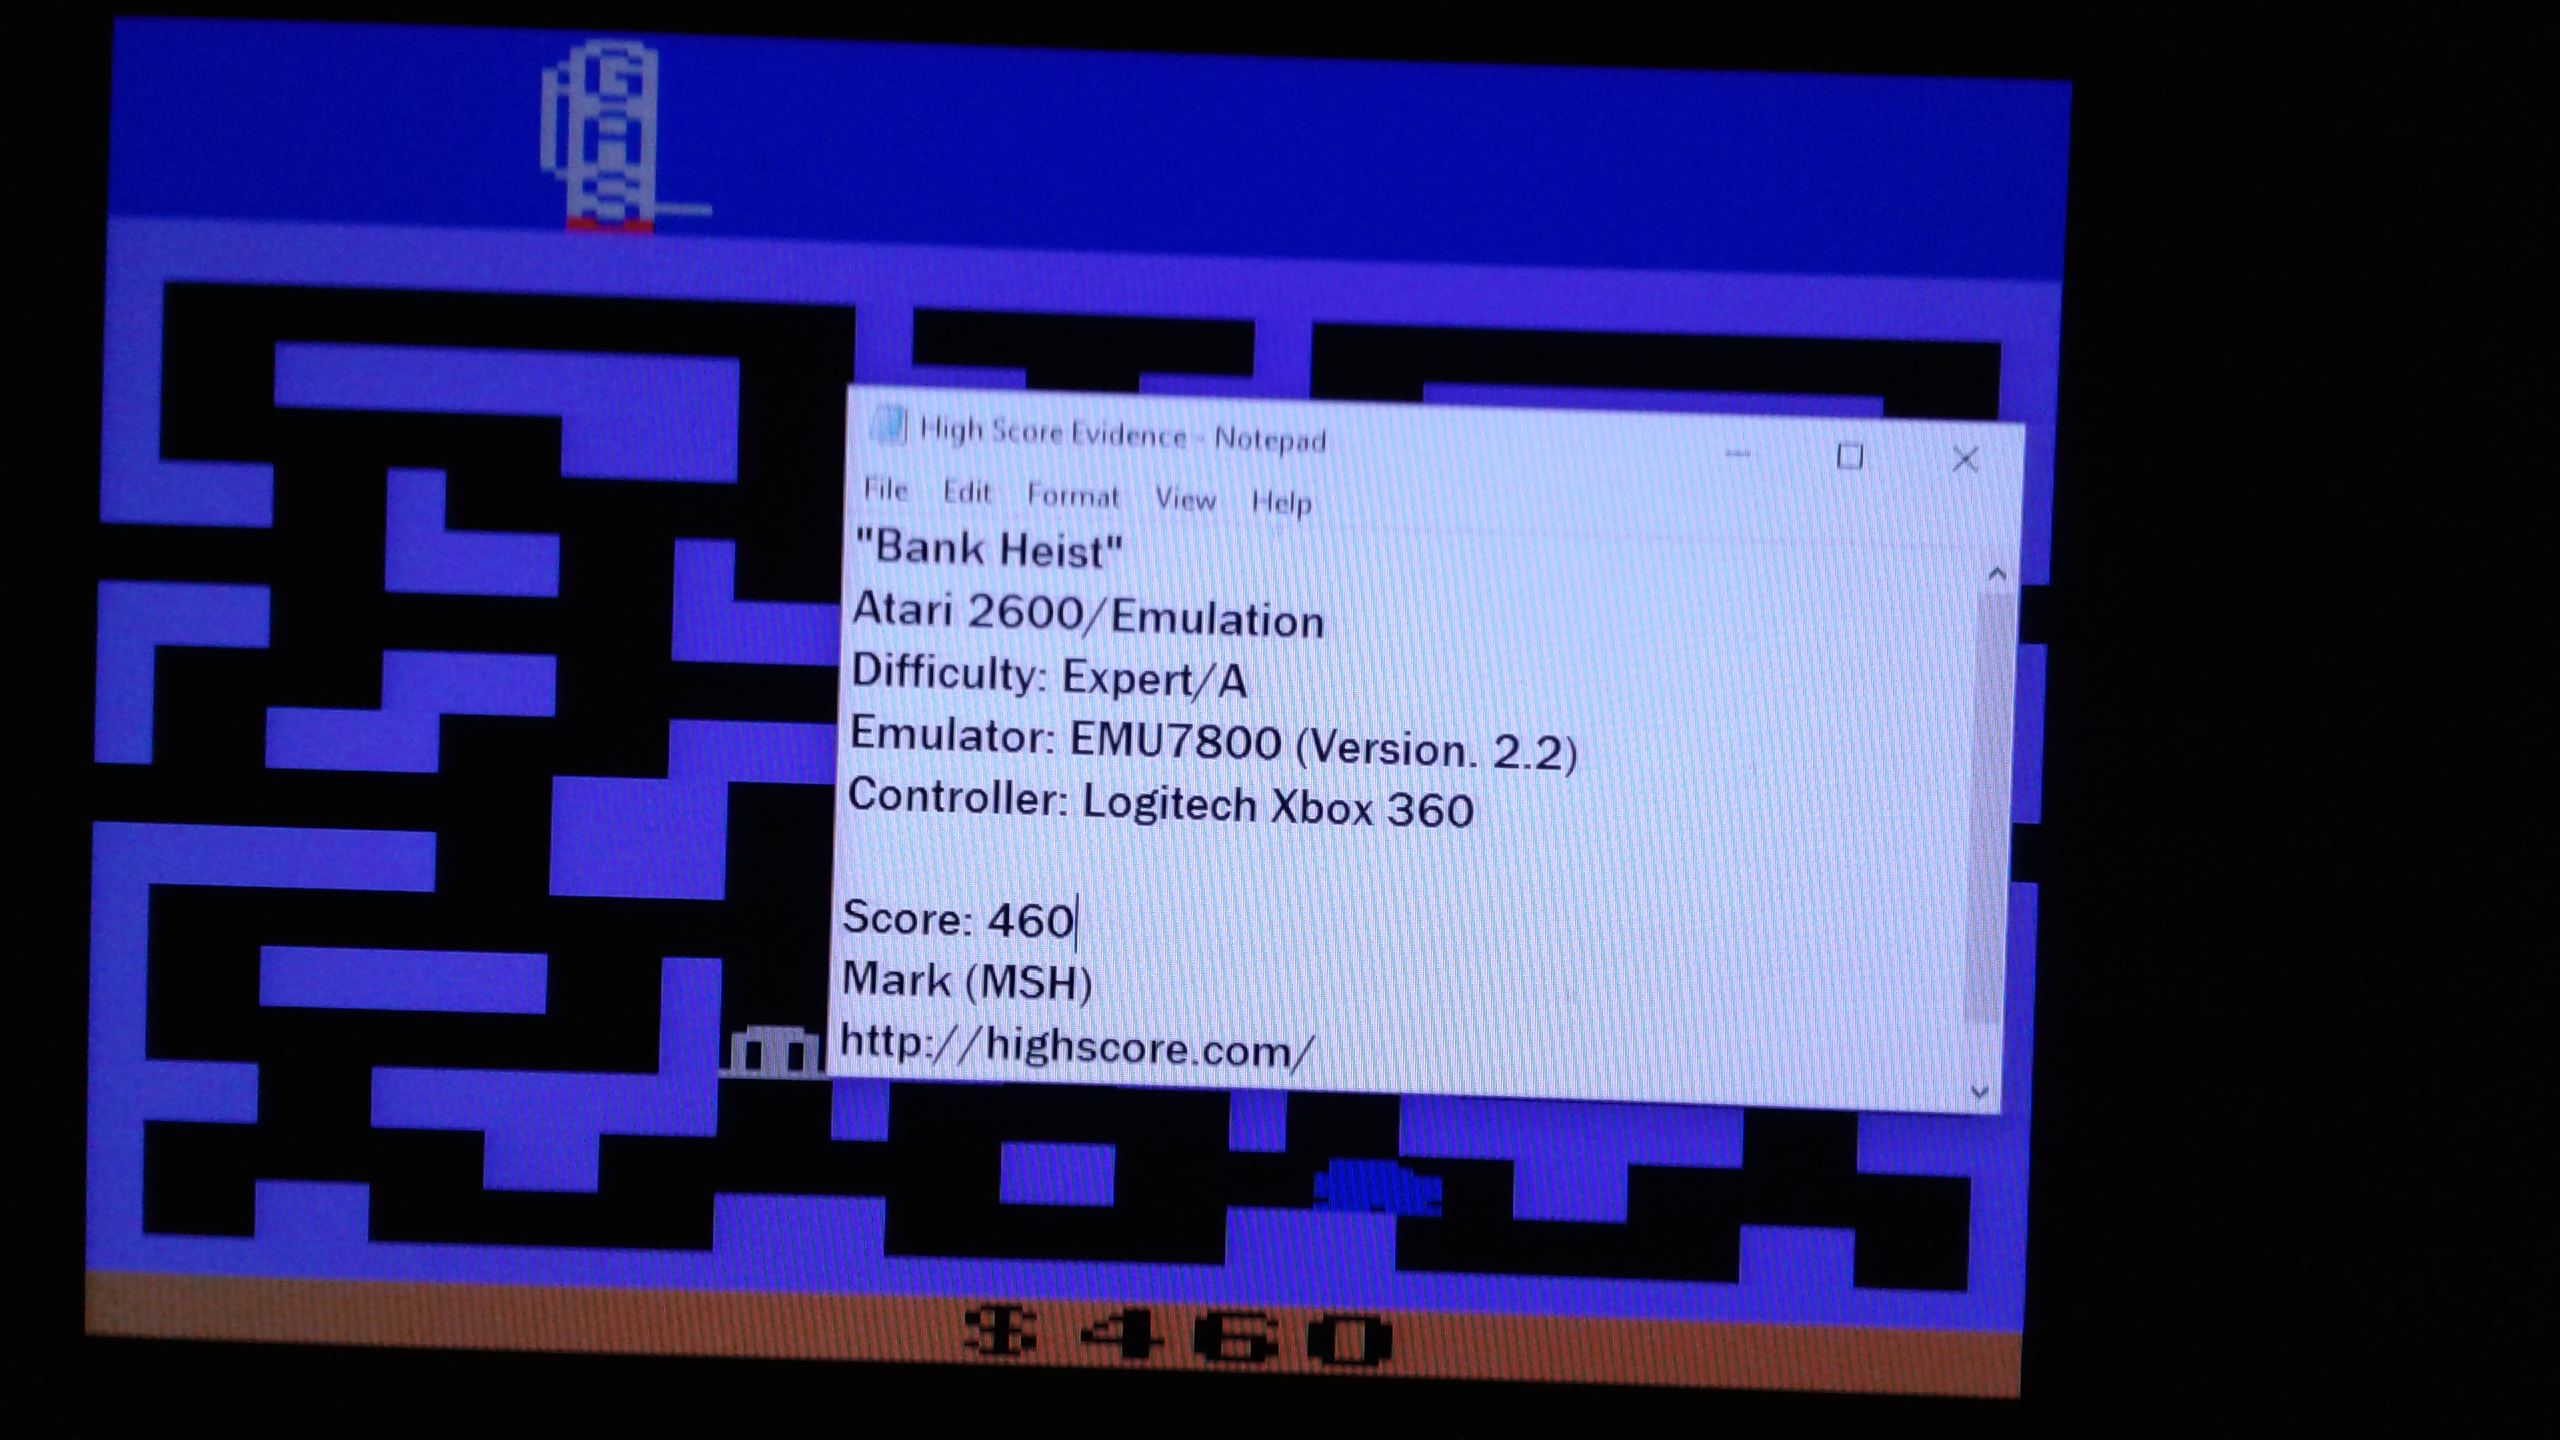 Mark: Bank Heist (Atari 2600 Emulated Expert/A Mode) 460 points on 2019-03-17 01:03:04